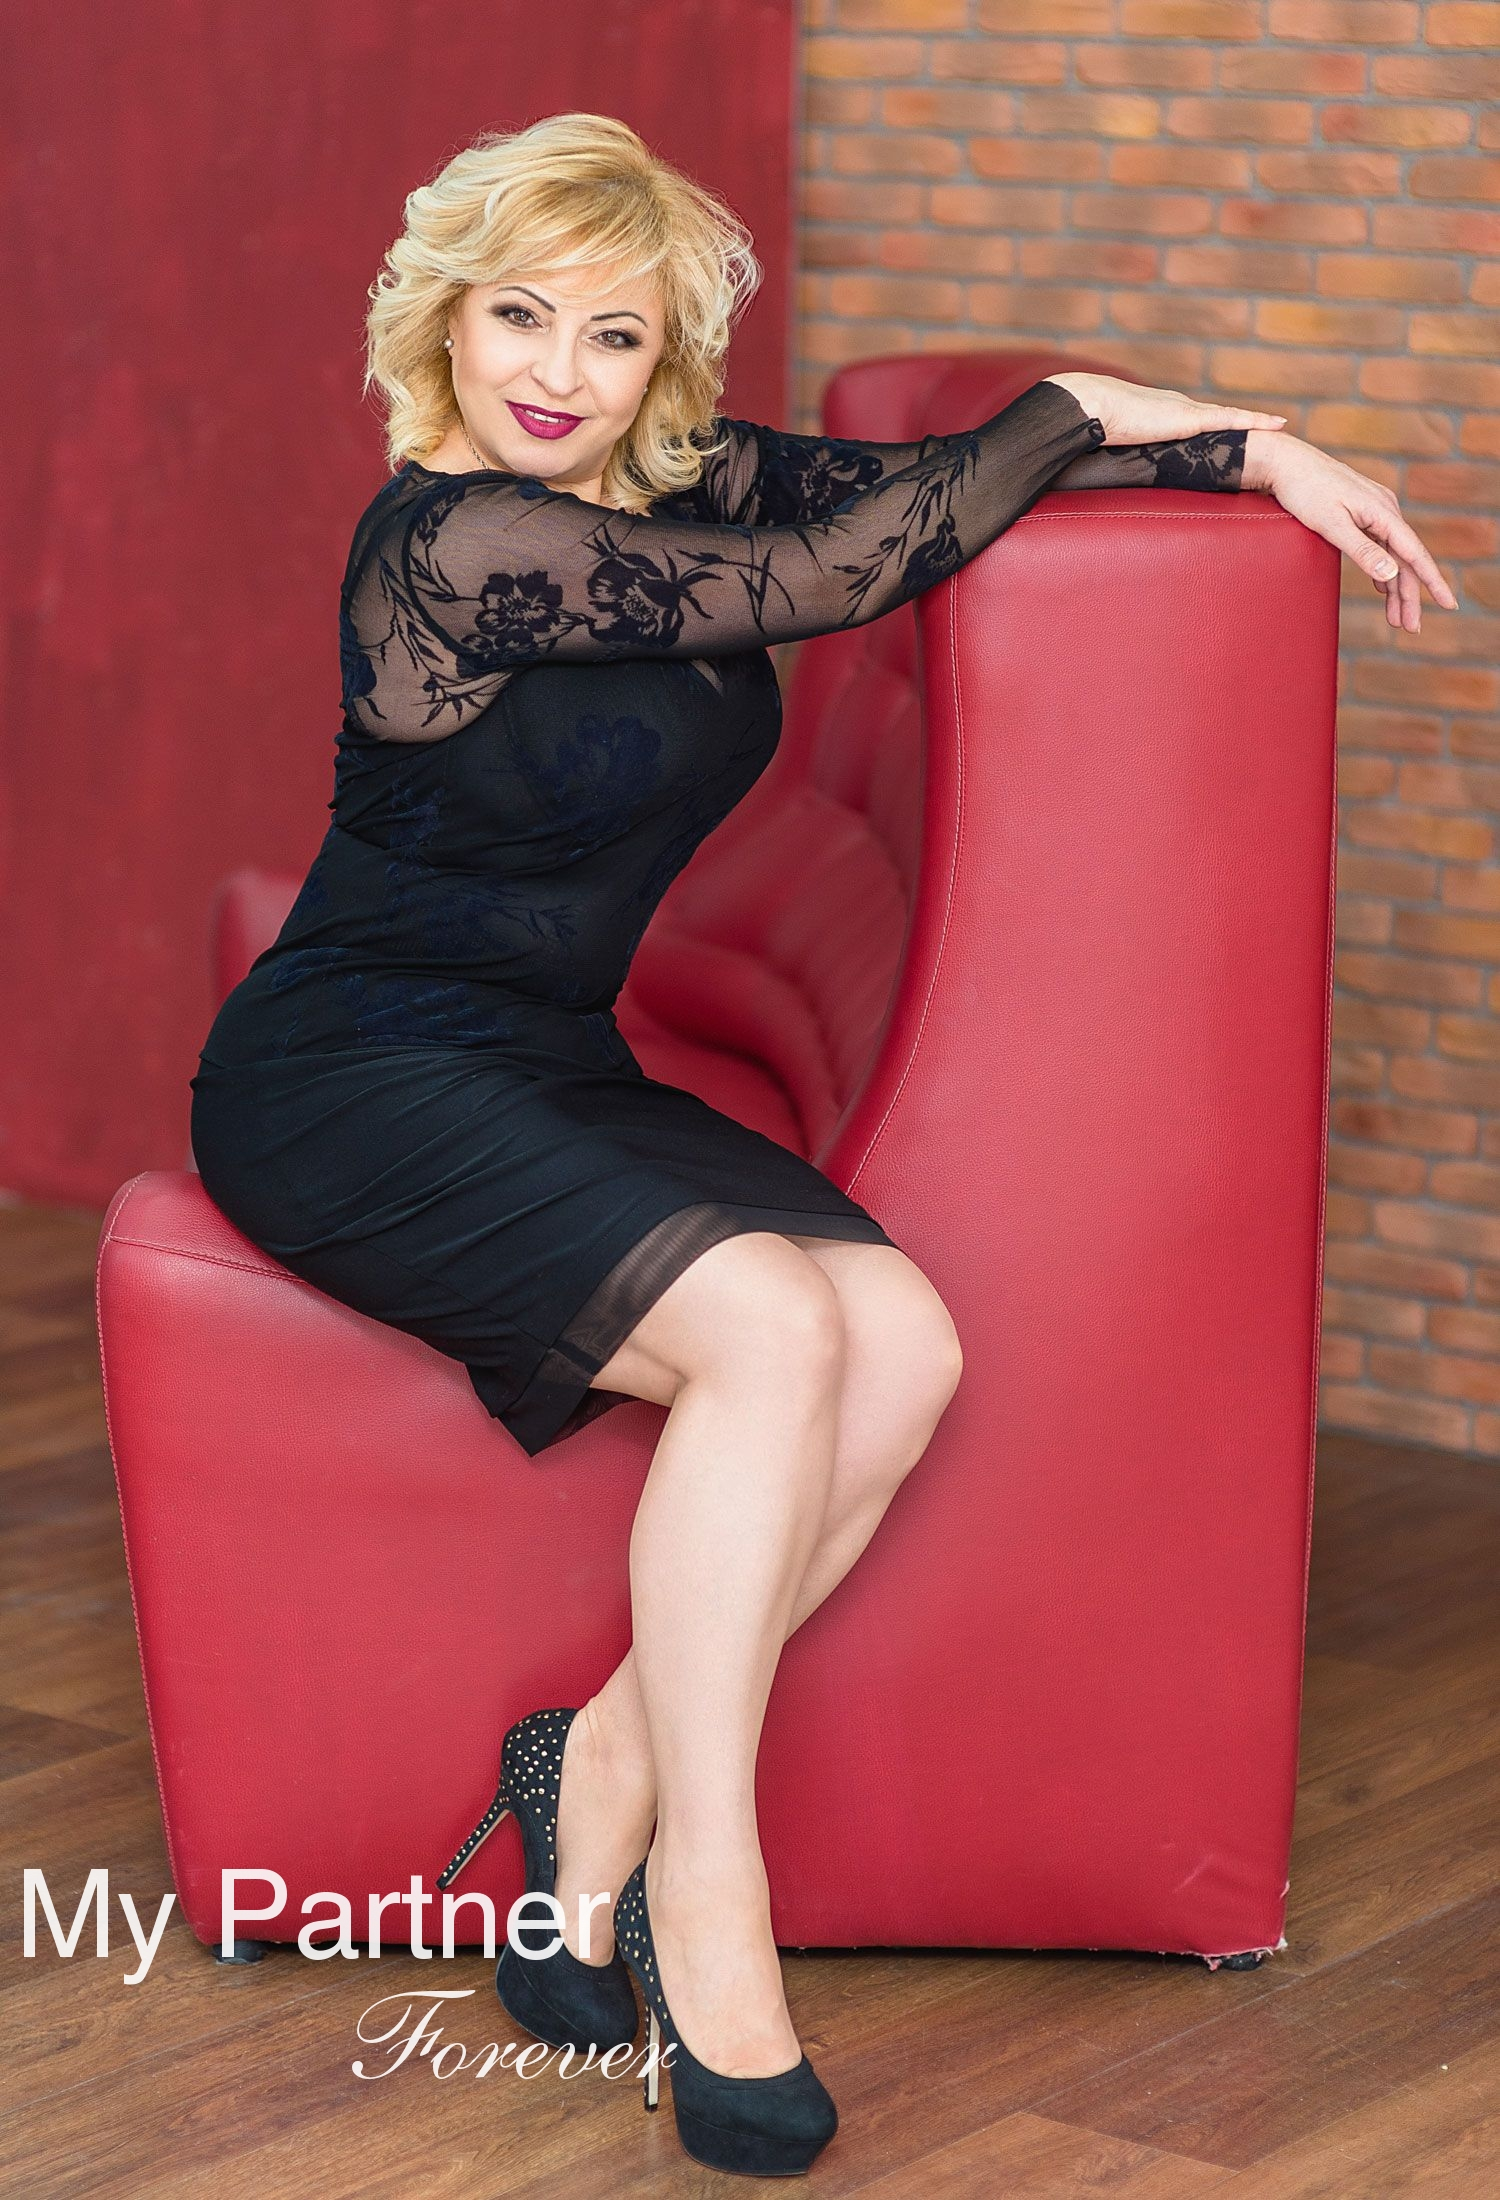 nikolaev dating sites Dating with russian women from nikolaev for videochat, romantic meetings,  marriage and travelling nikolaev brides, nikolaev woman, mail order brides.